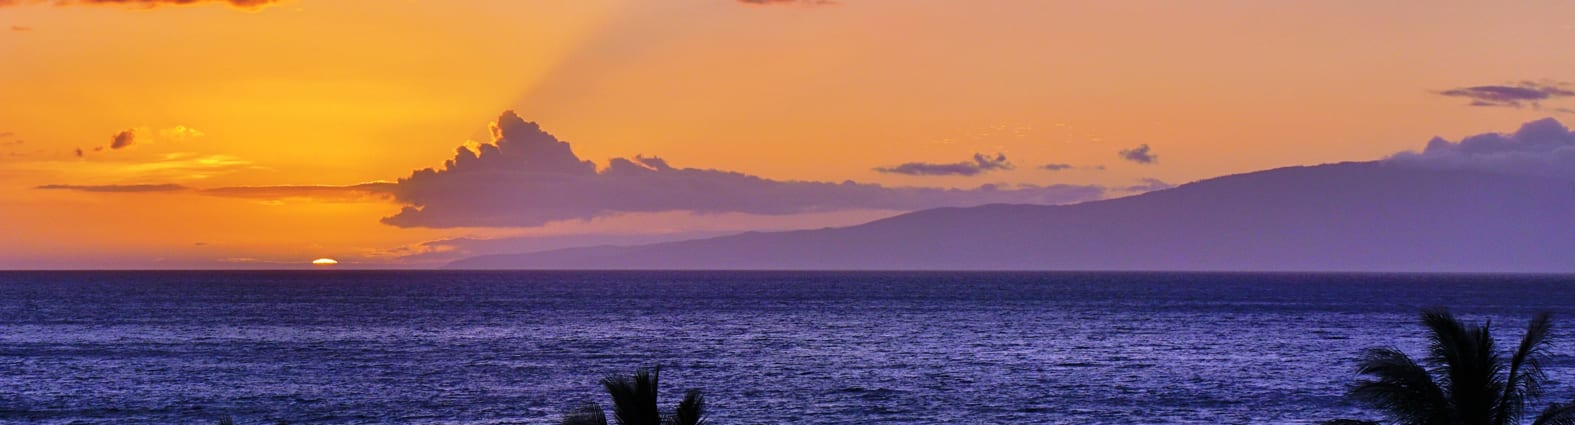 Sunset Tours in Maui - 2577